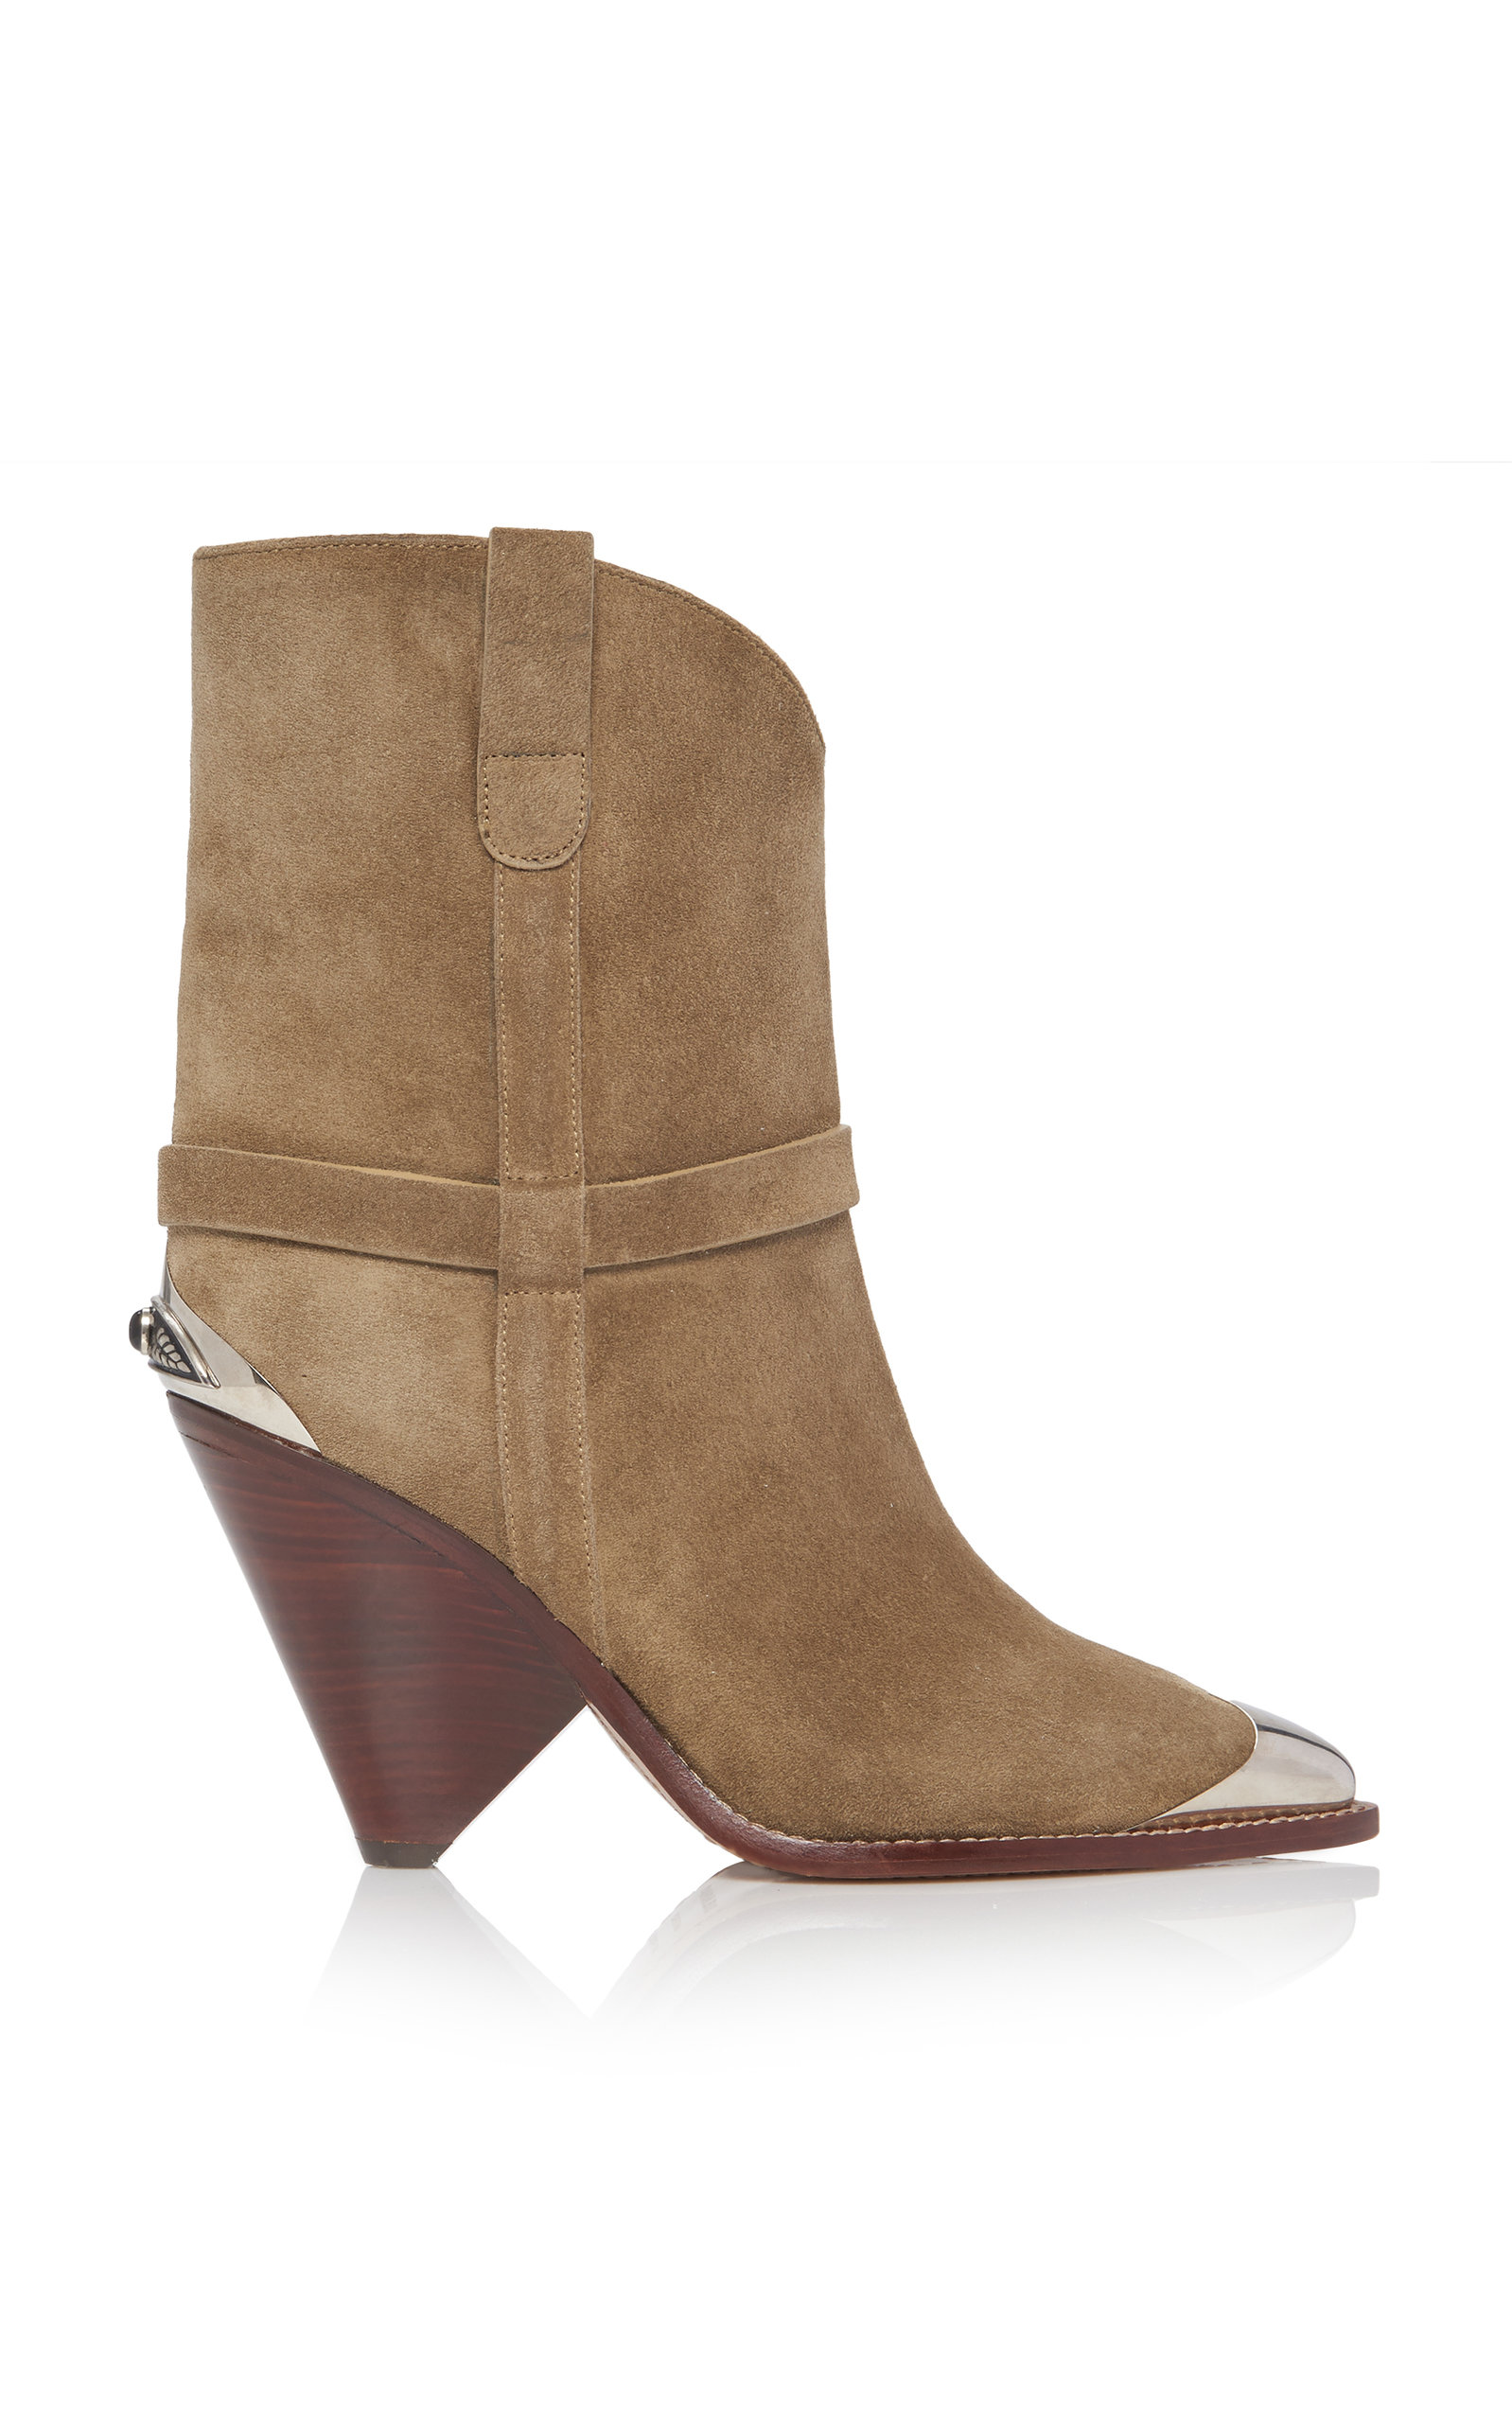 Isabel Marant Boots Lamsy Calf Suede Boots